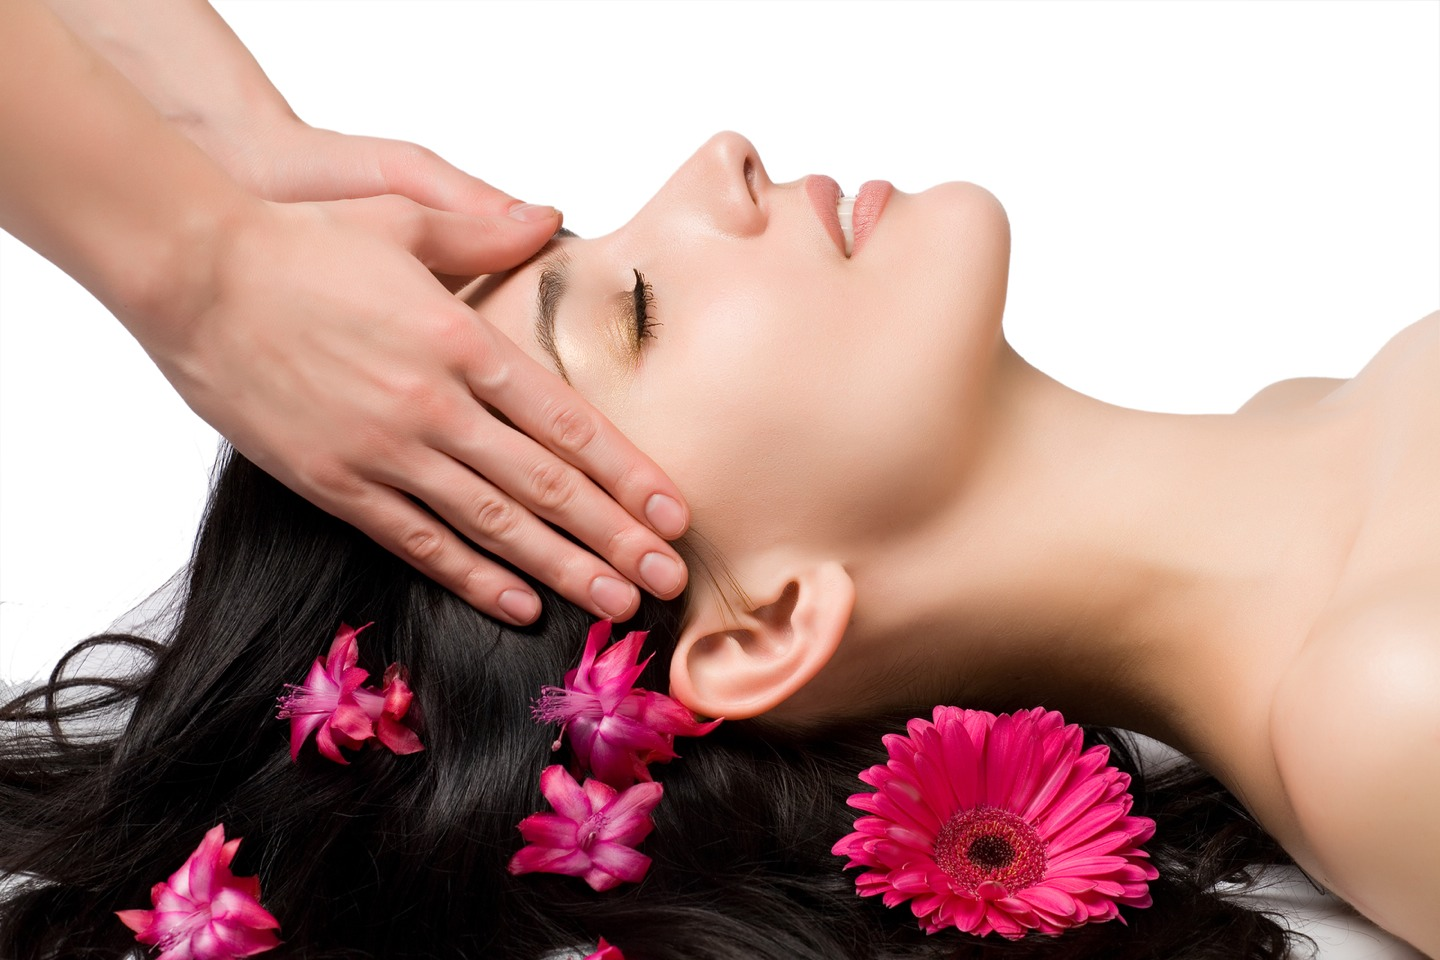 Massage ur hair with the heated oil an keep it in for 2 hours or sleep with it in